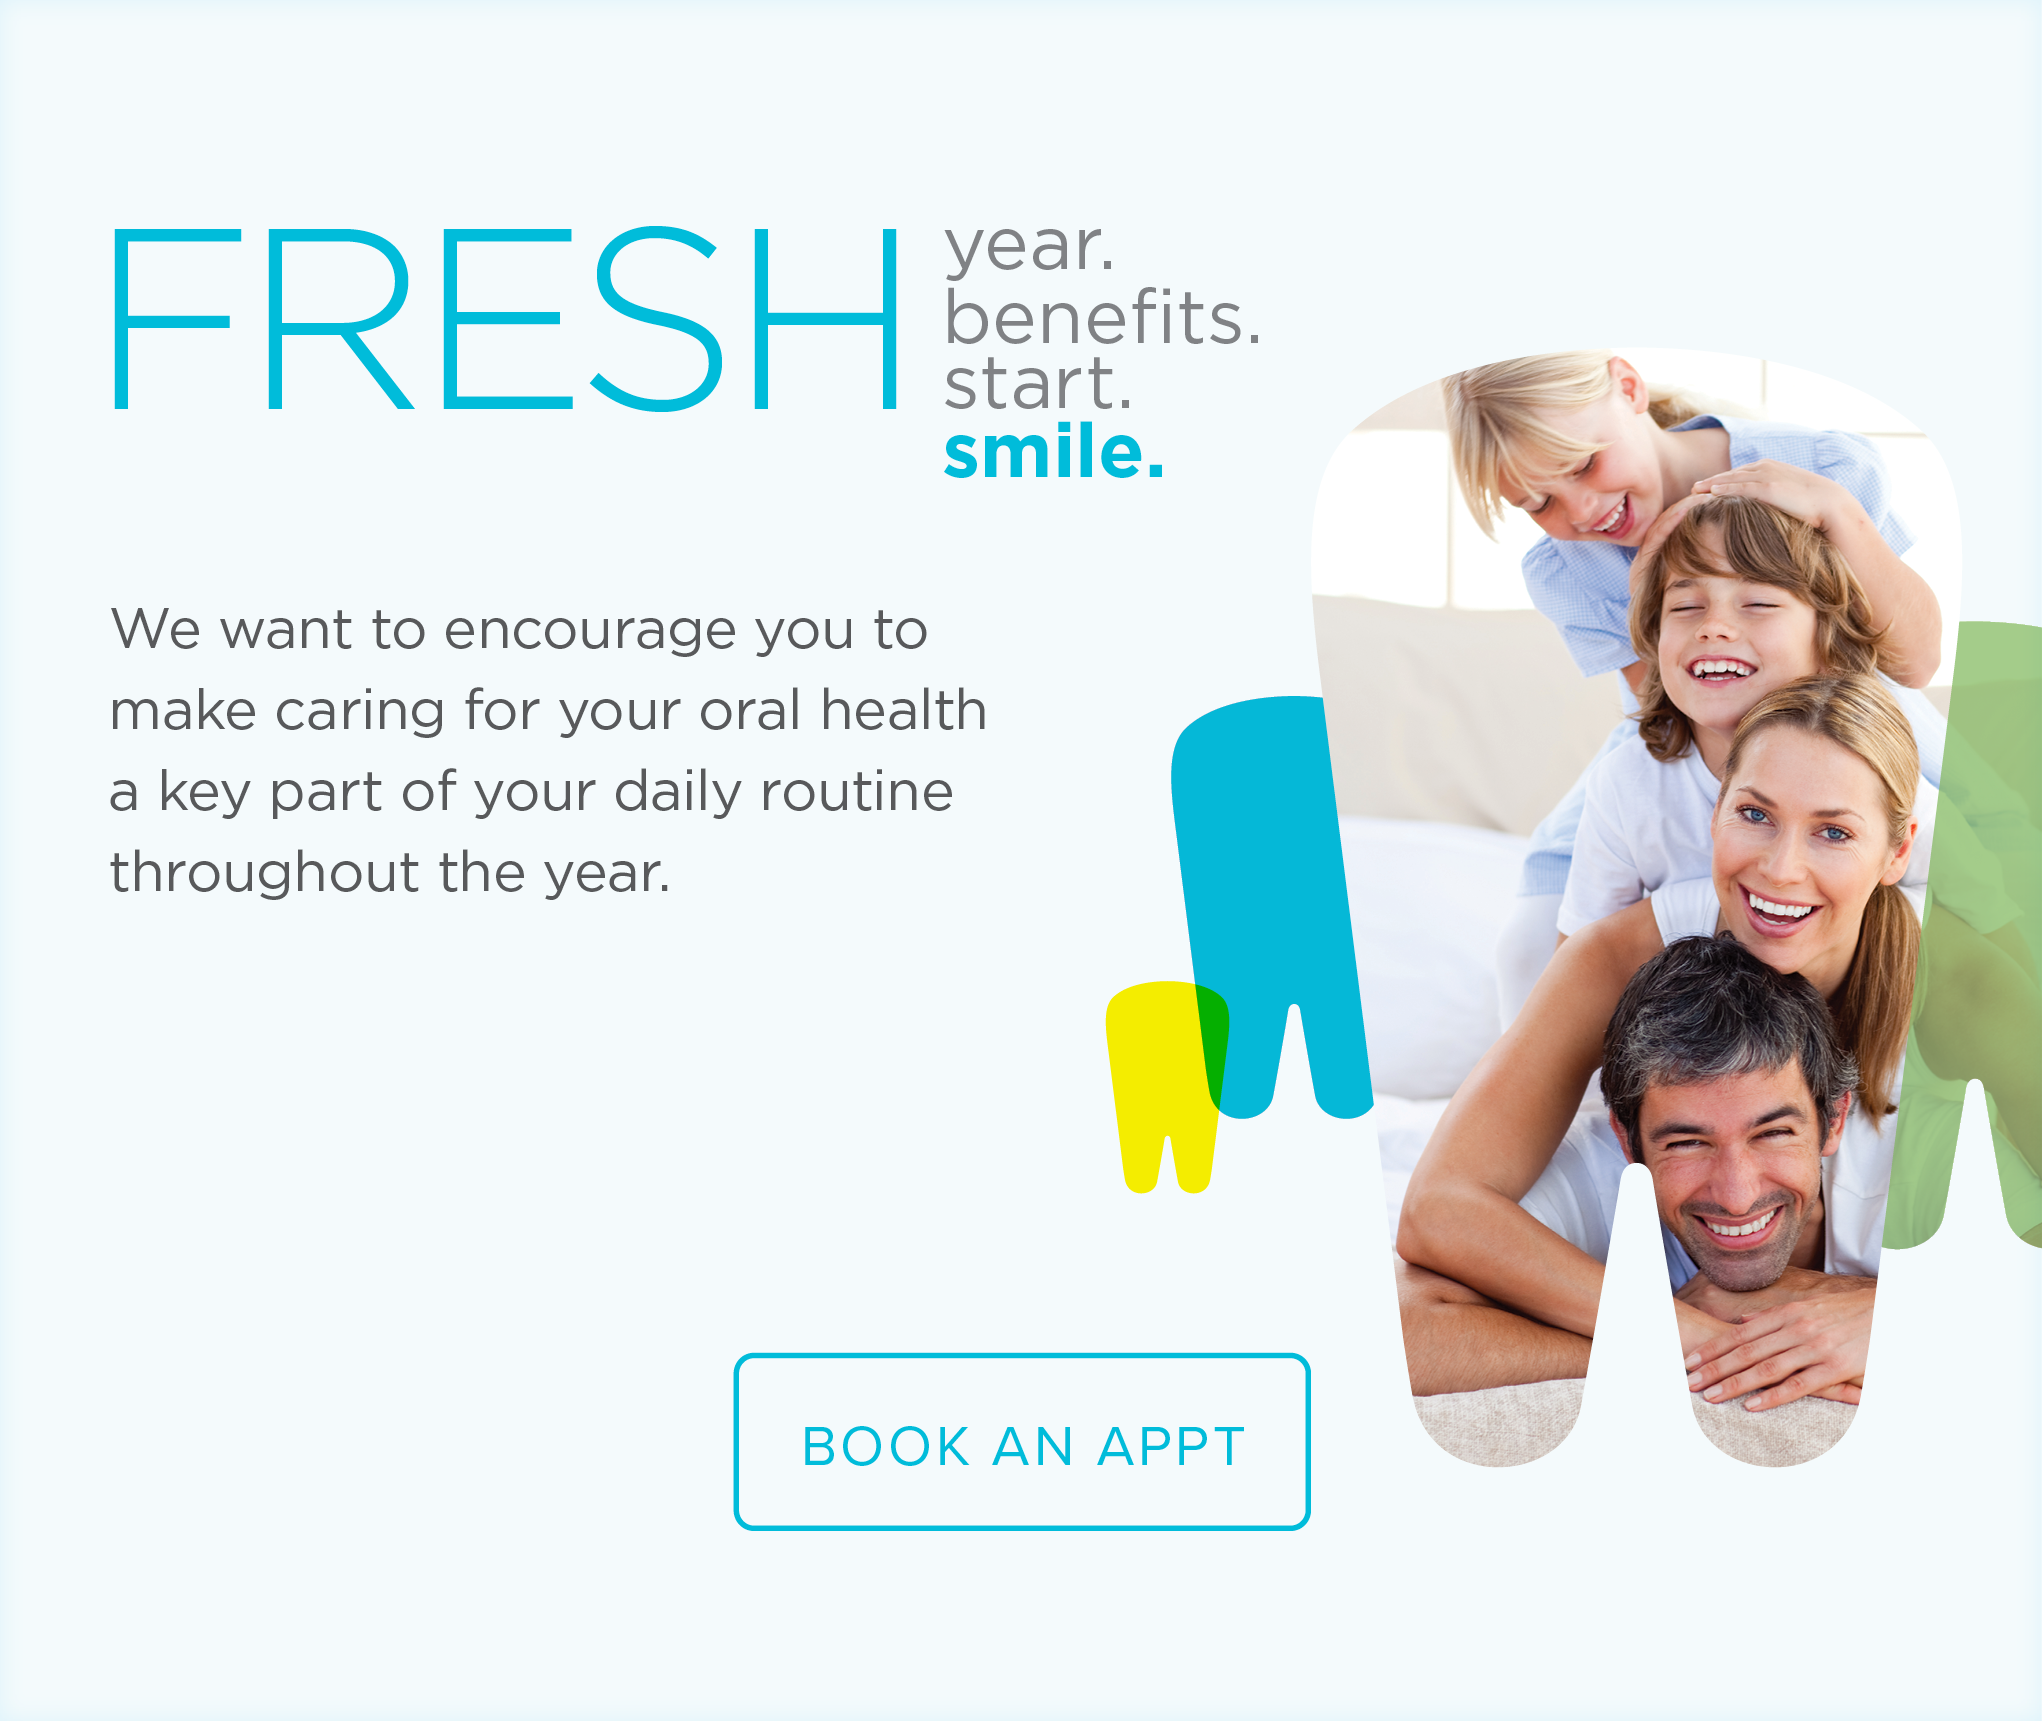 Austell Smiles Dentistry  and Orthodontics - Make the Most of Your Benefits